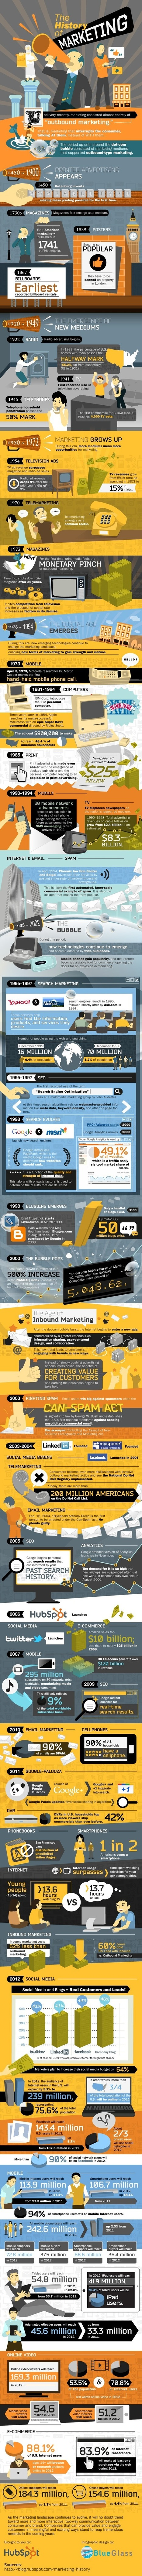 A Thorough (!) History of Marketing 1450s to 2012 > Infographic | The Social Media Learning Lab | Scoop.it